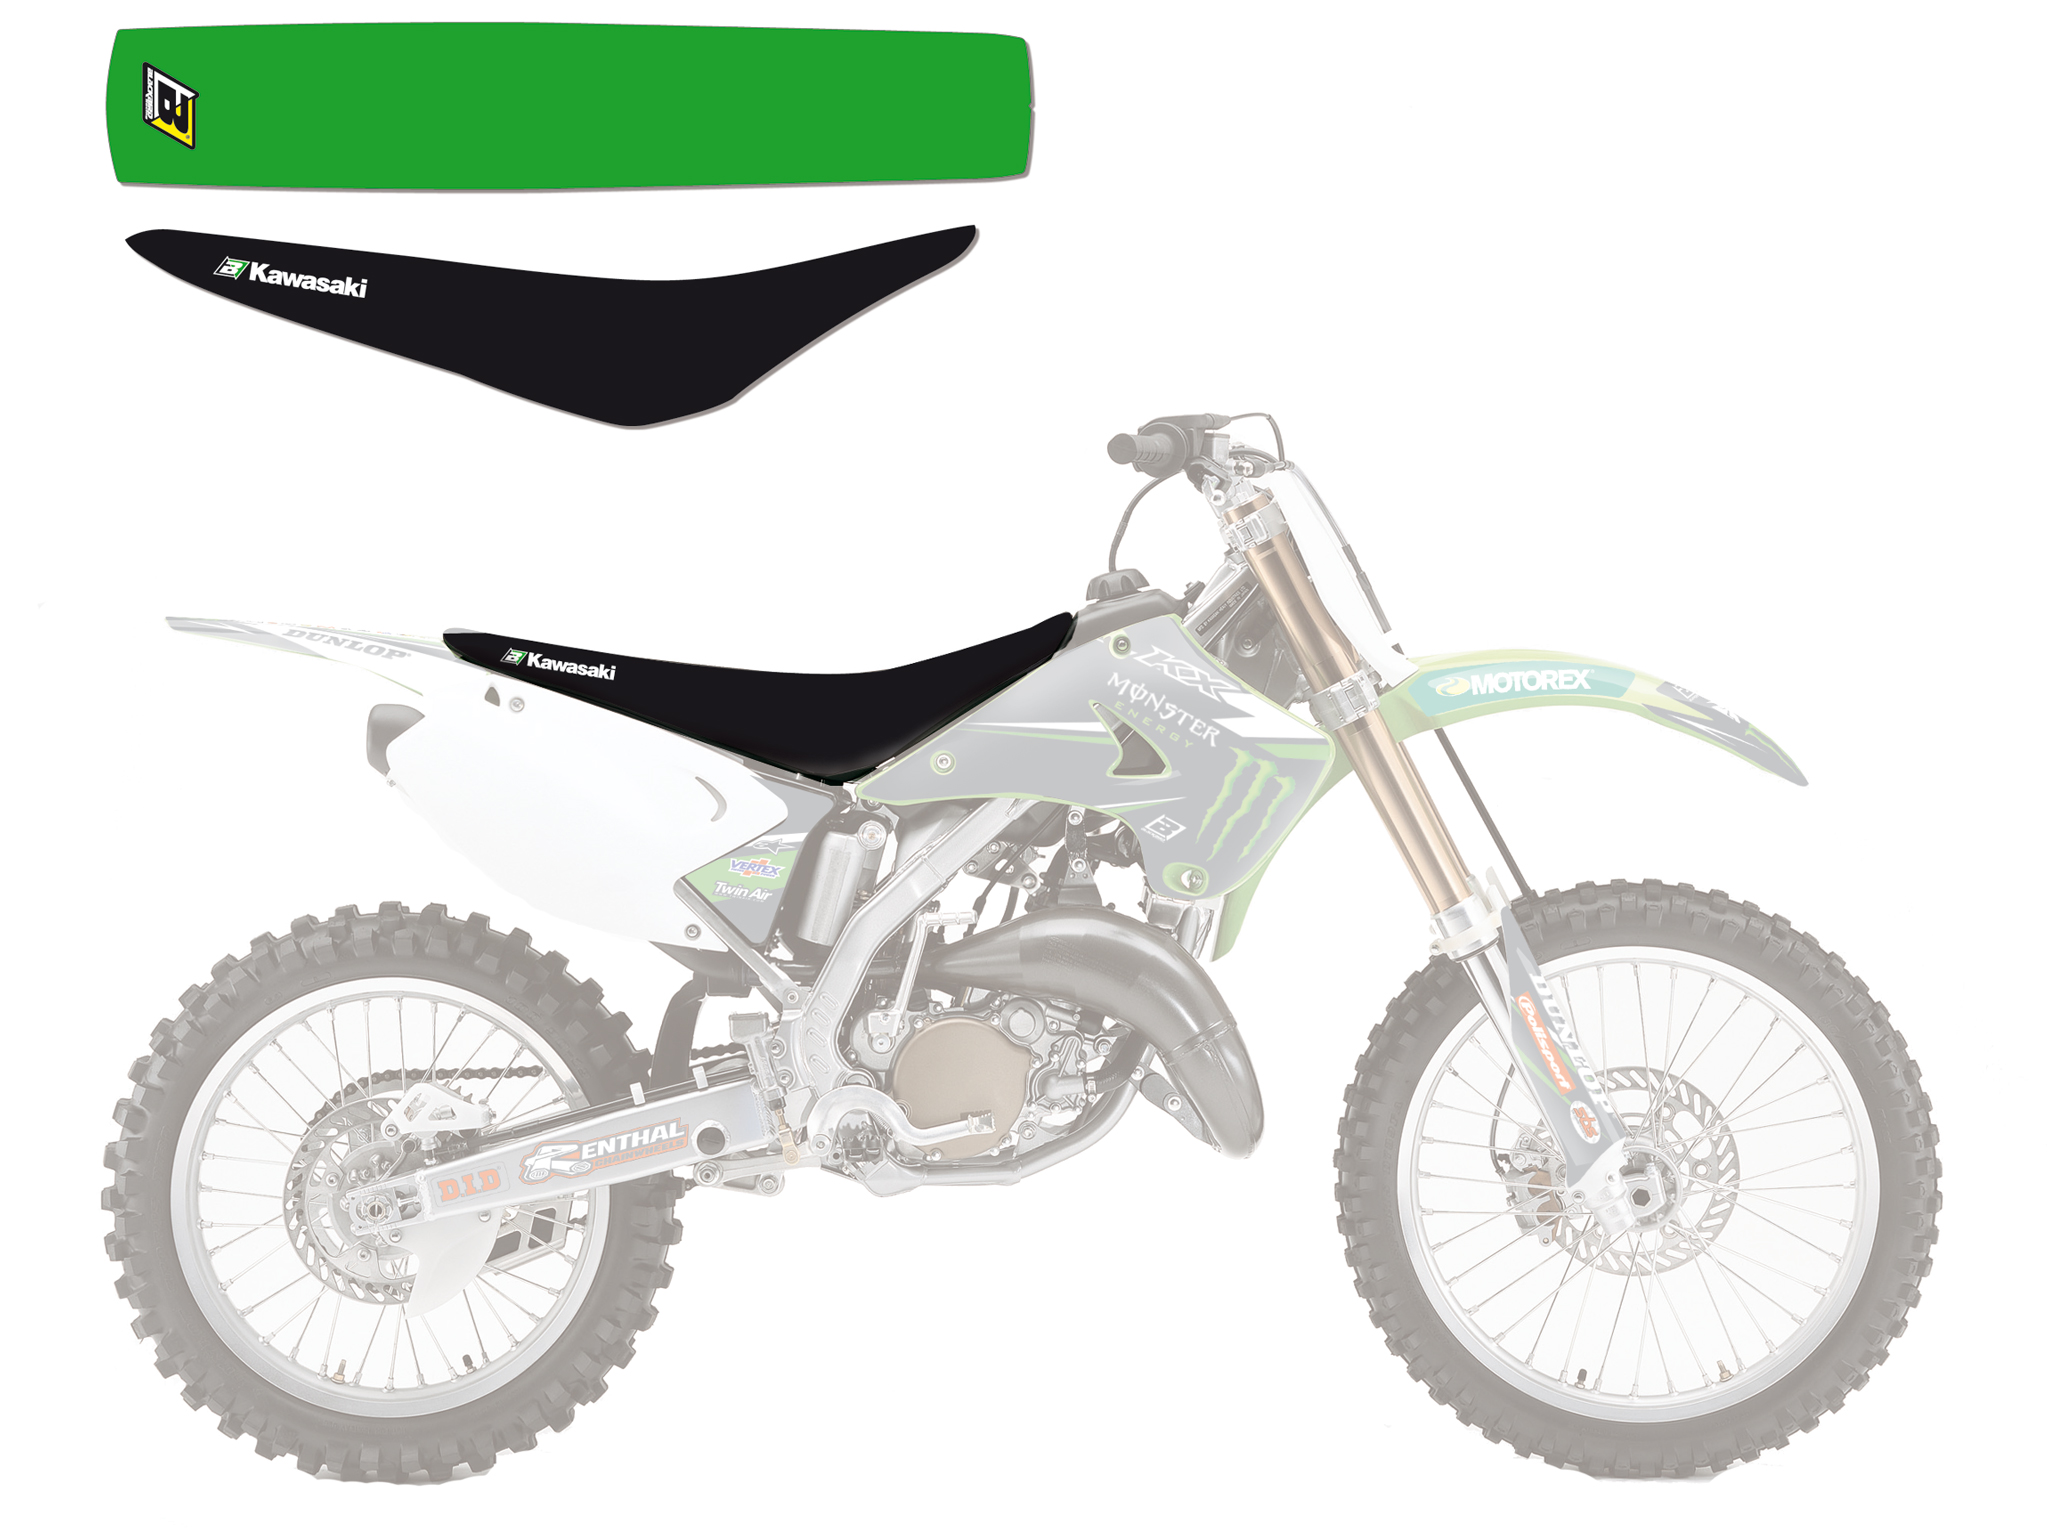 kit deco replica energy kawasaki racing team 125 250 kx 2003 2008 crossmoto fr 26 11 2017